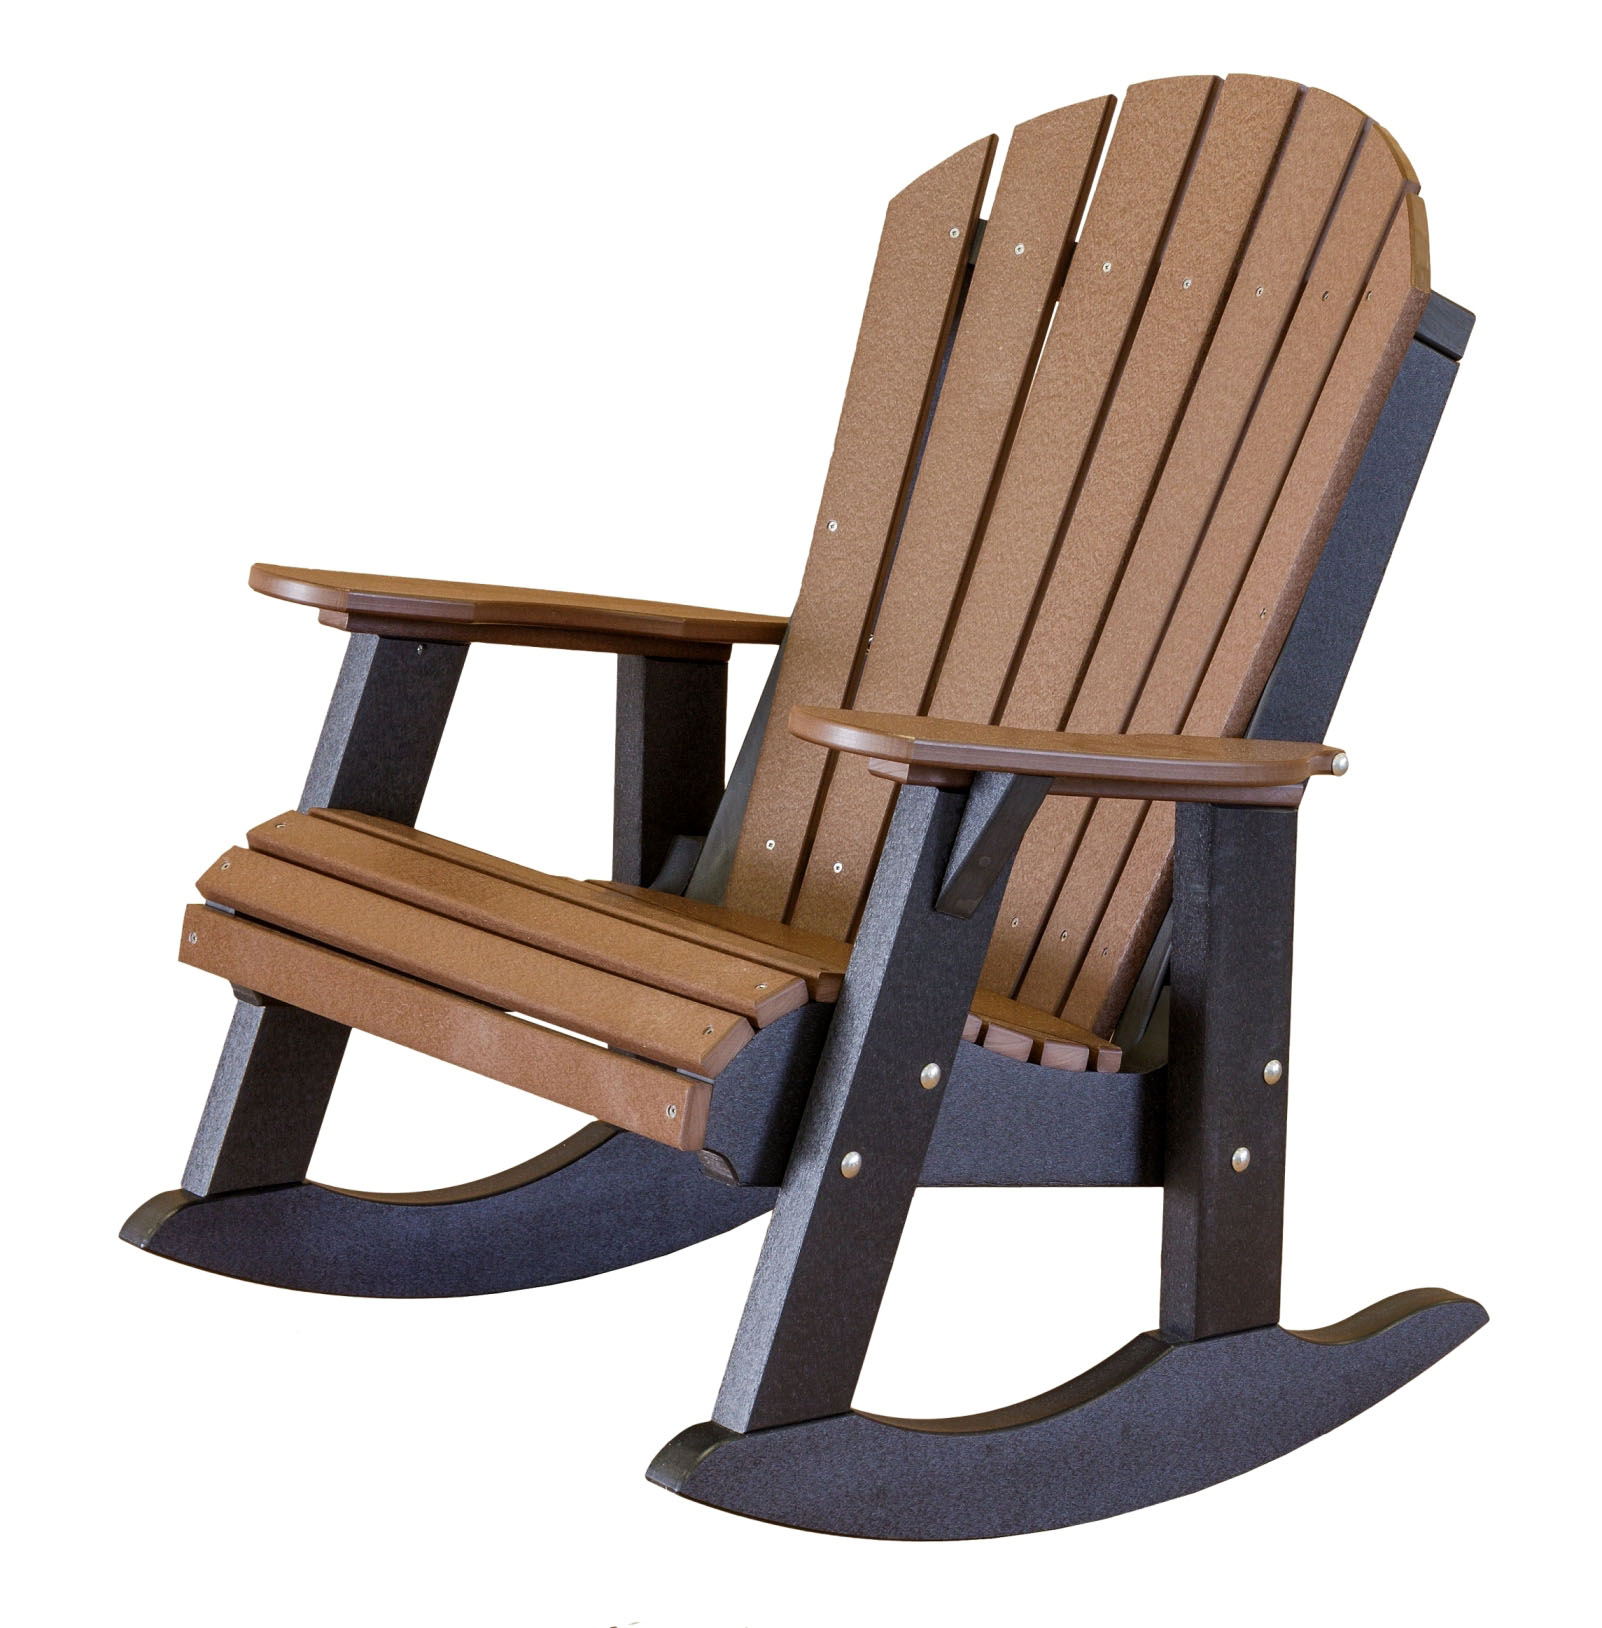 Wildridge Poly Vinyl Furniture Heritage Adirondack Rocker Lcc 115 Wooden Playscapes